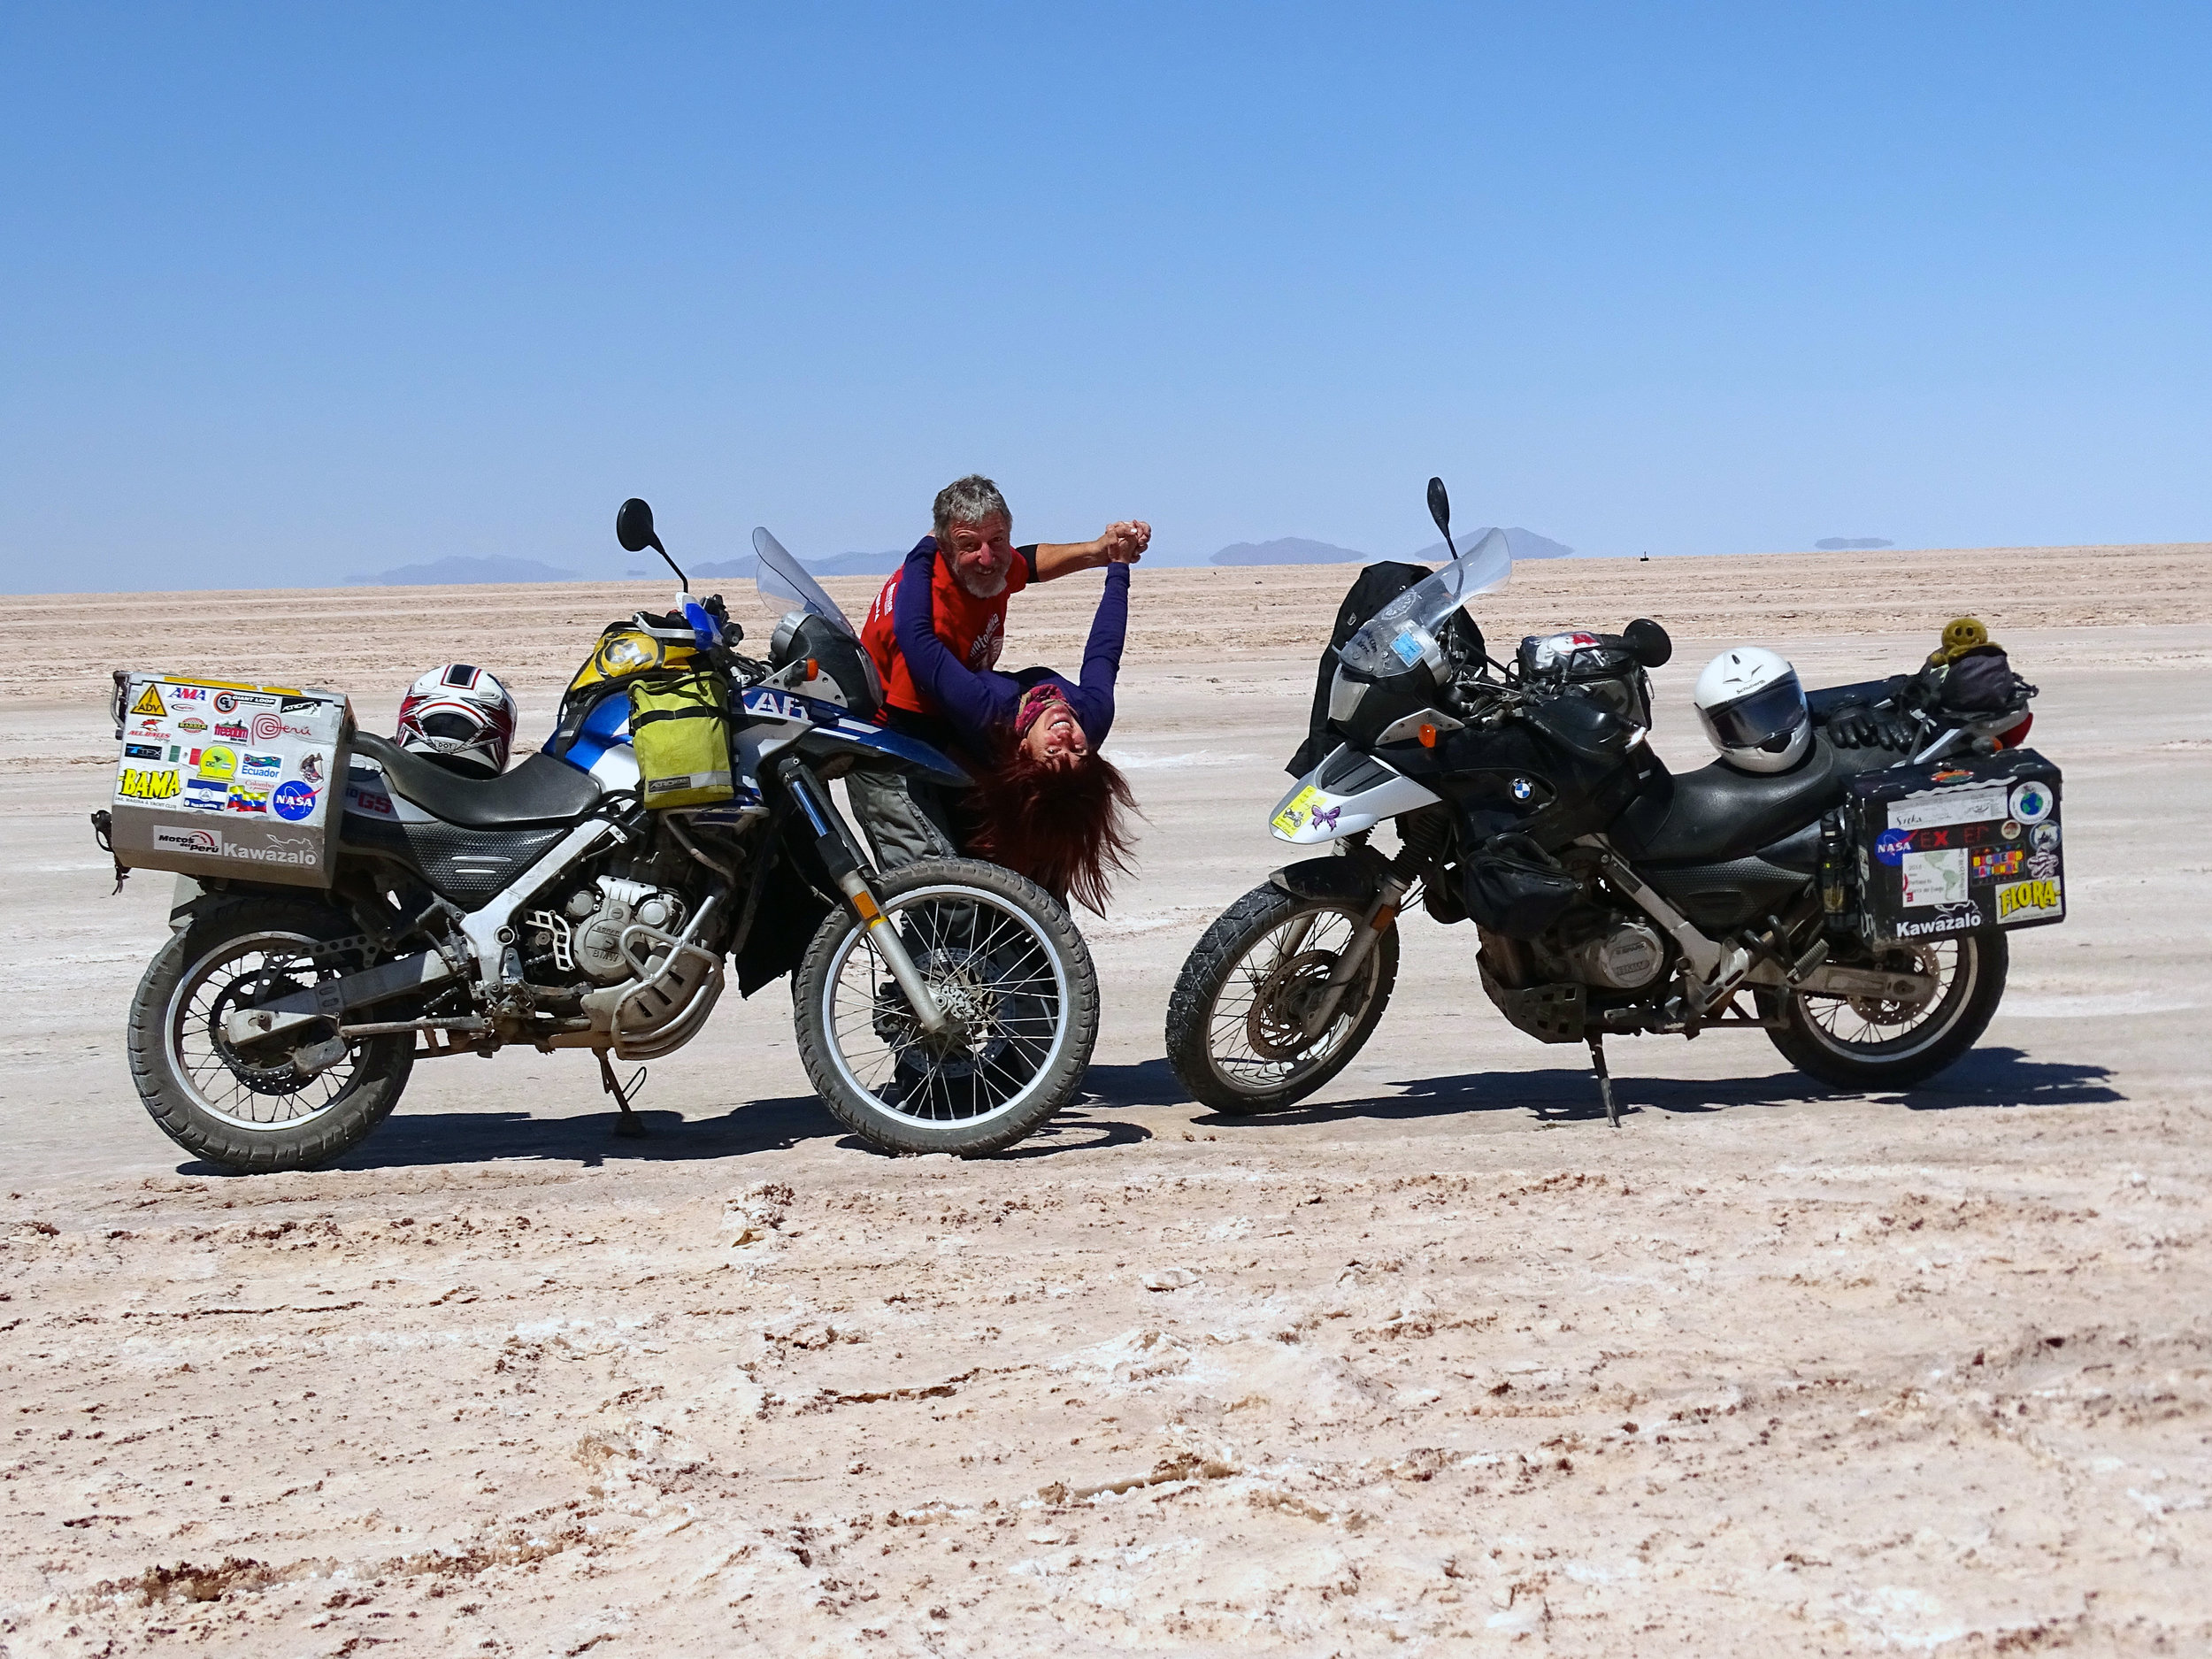 Learn more about our motorcycle trip here.